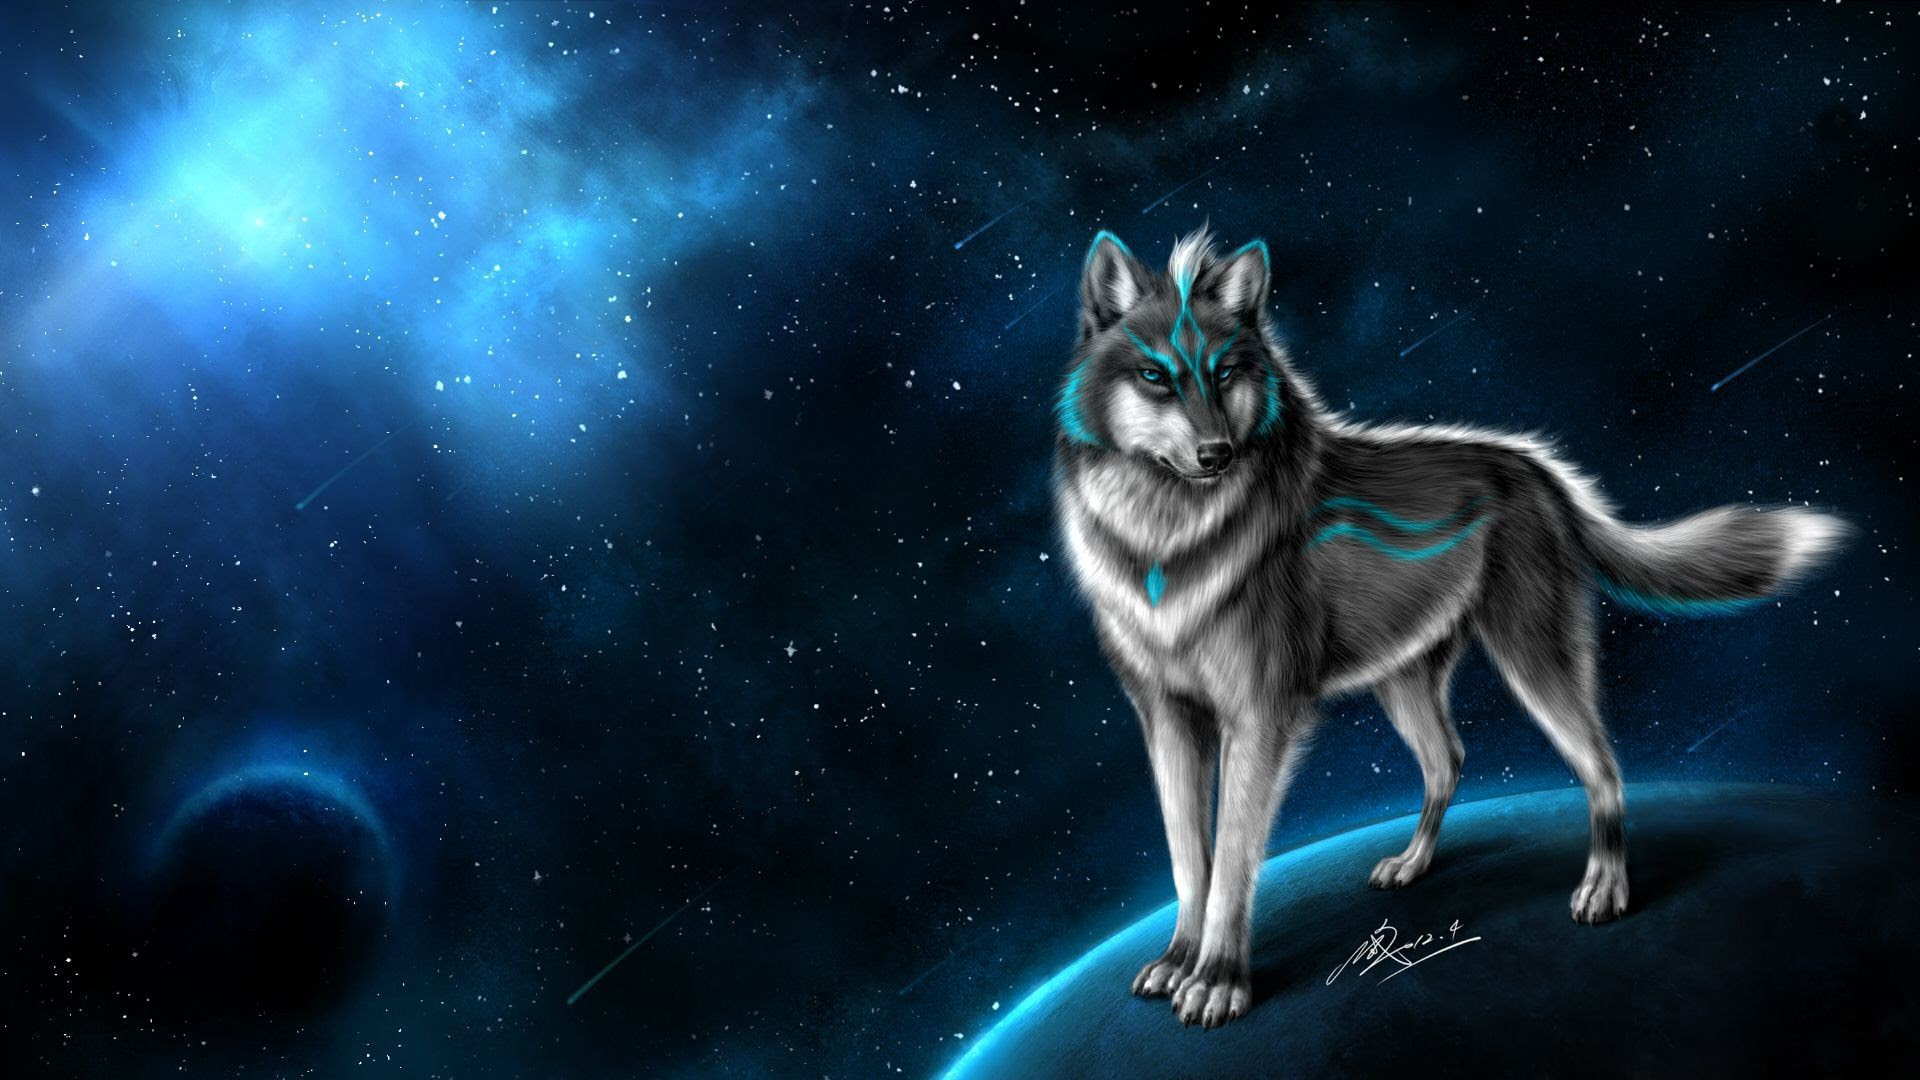 Galaxy Wolf Wallpaper 69 Images - pictures of wolves with a galaxy background